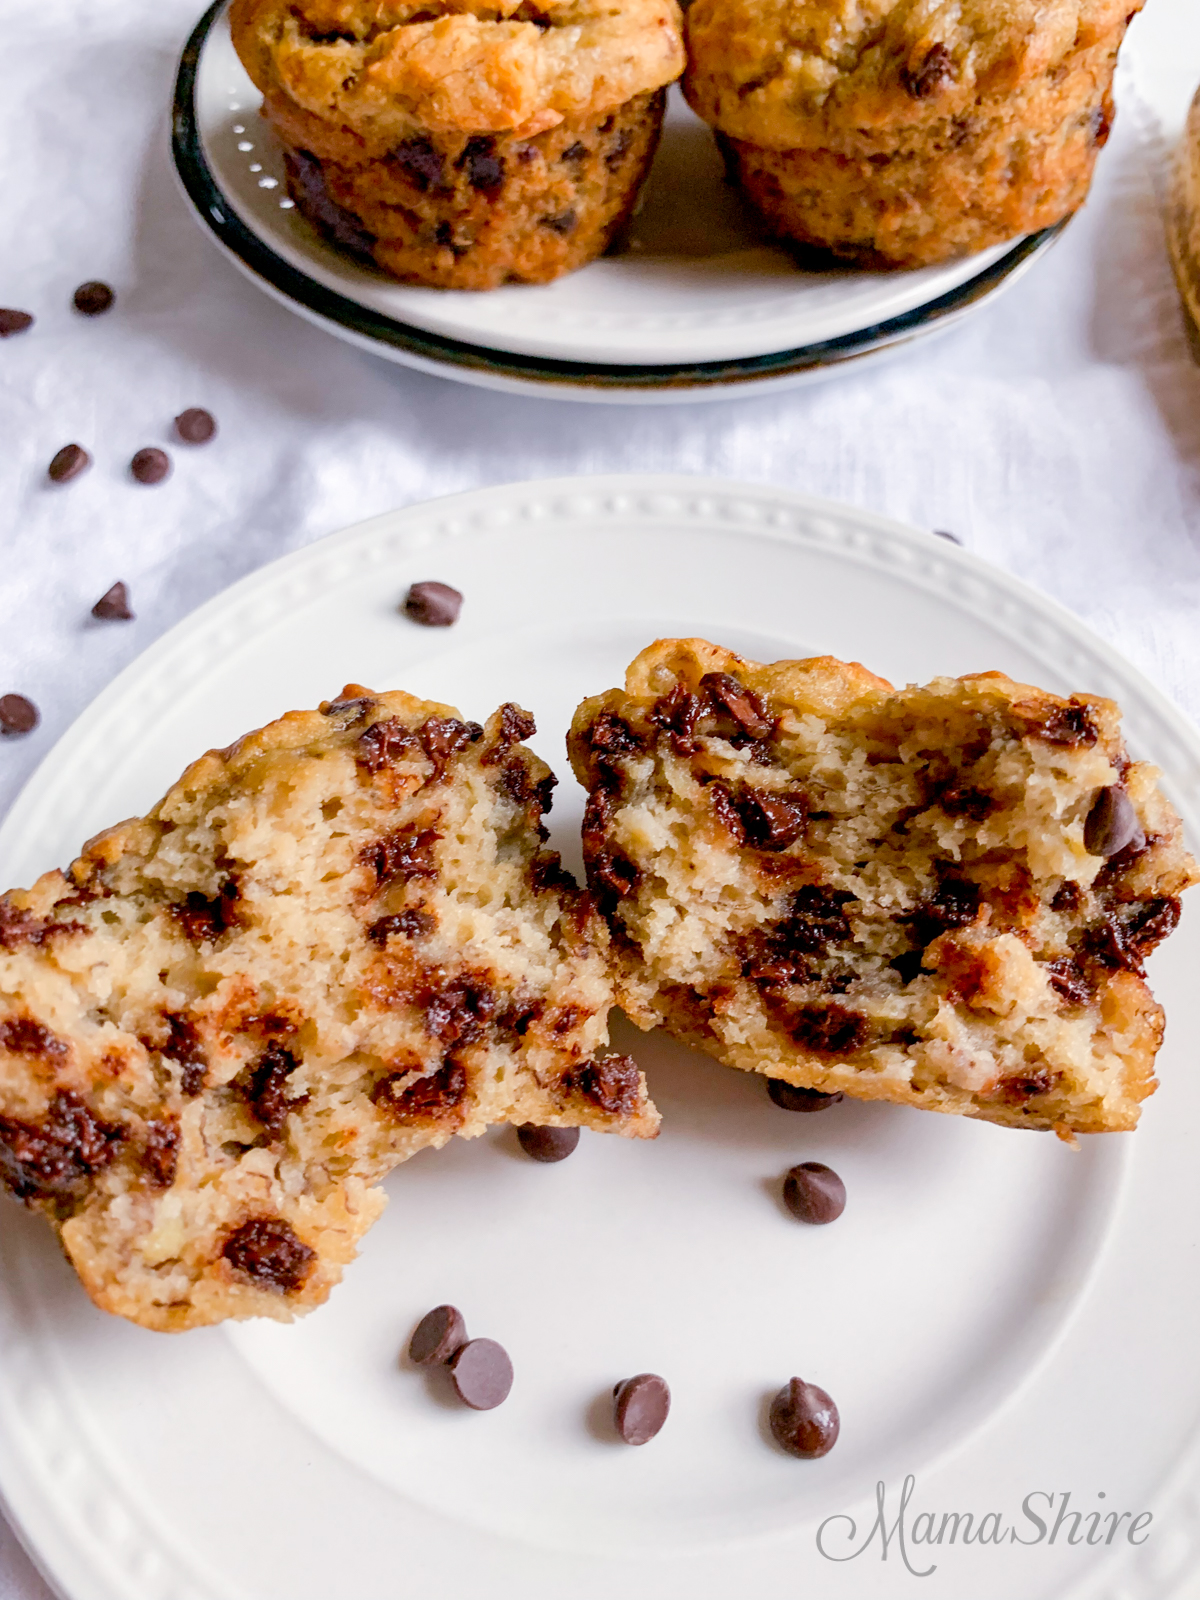 Delicious and moist gluten-free dairy-free banana chocolate chip muffins.